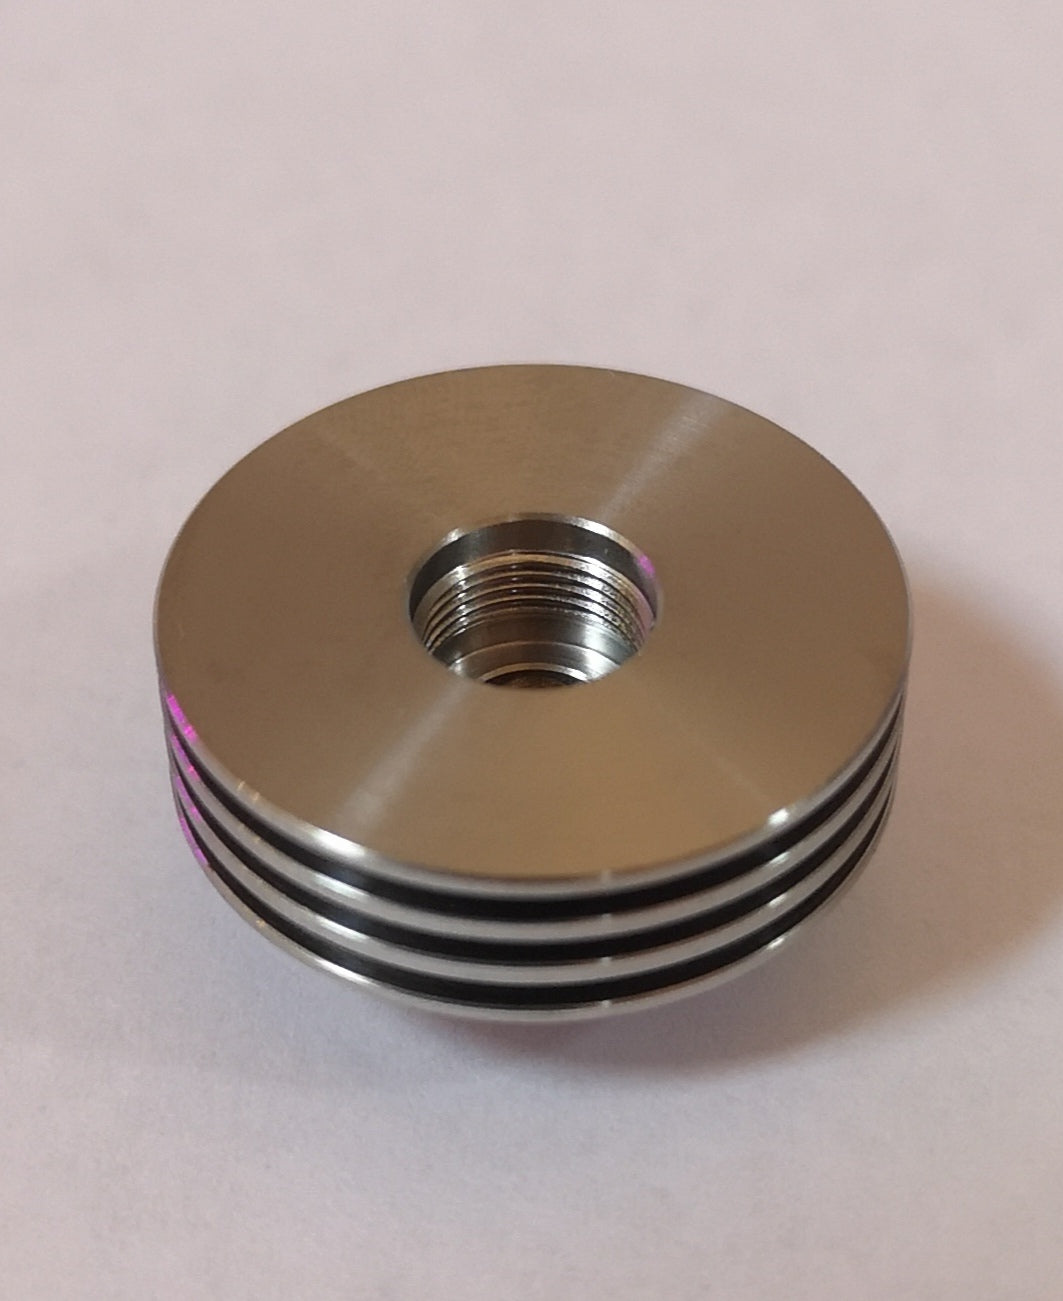 HVT Sai Stainless Steel Spacer top view - Recommended Vape Supplies